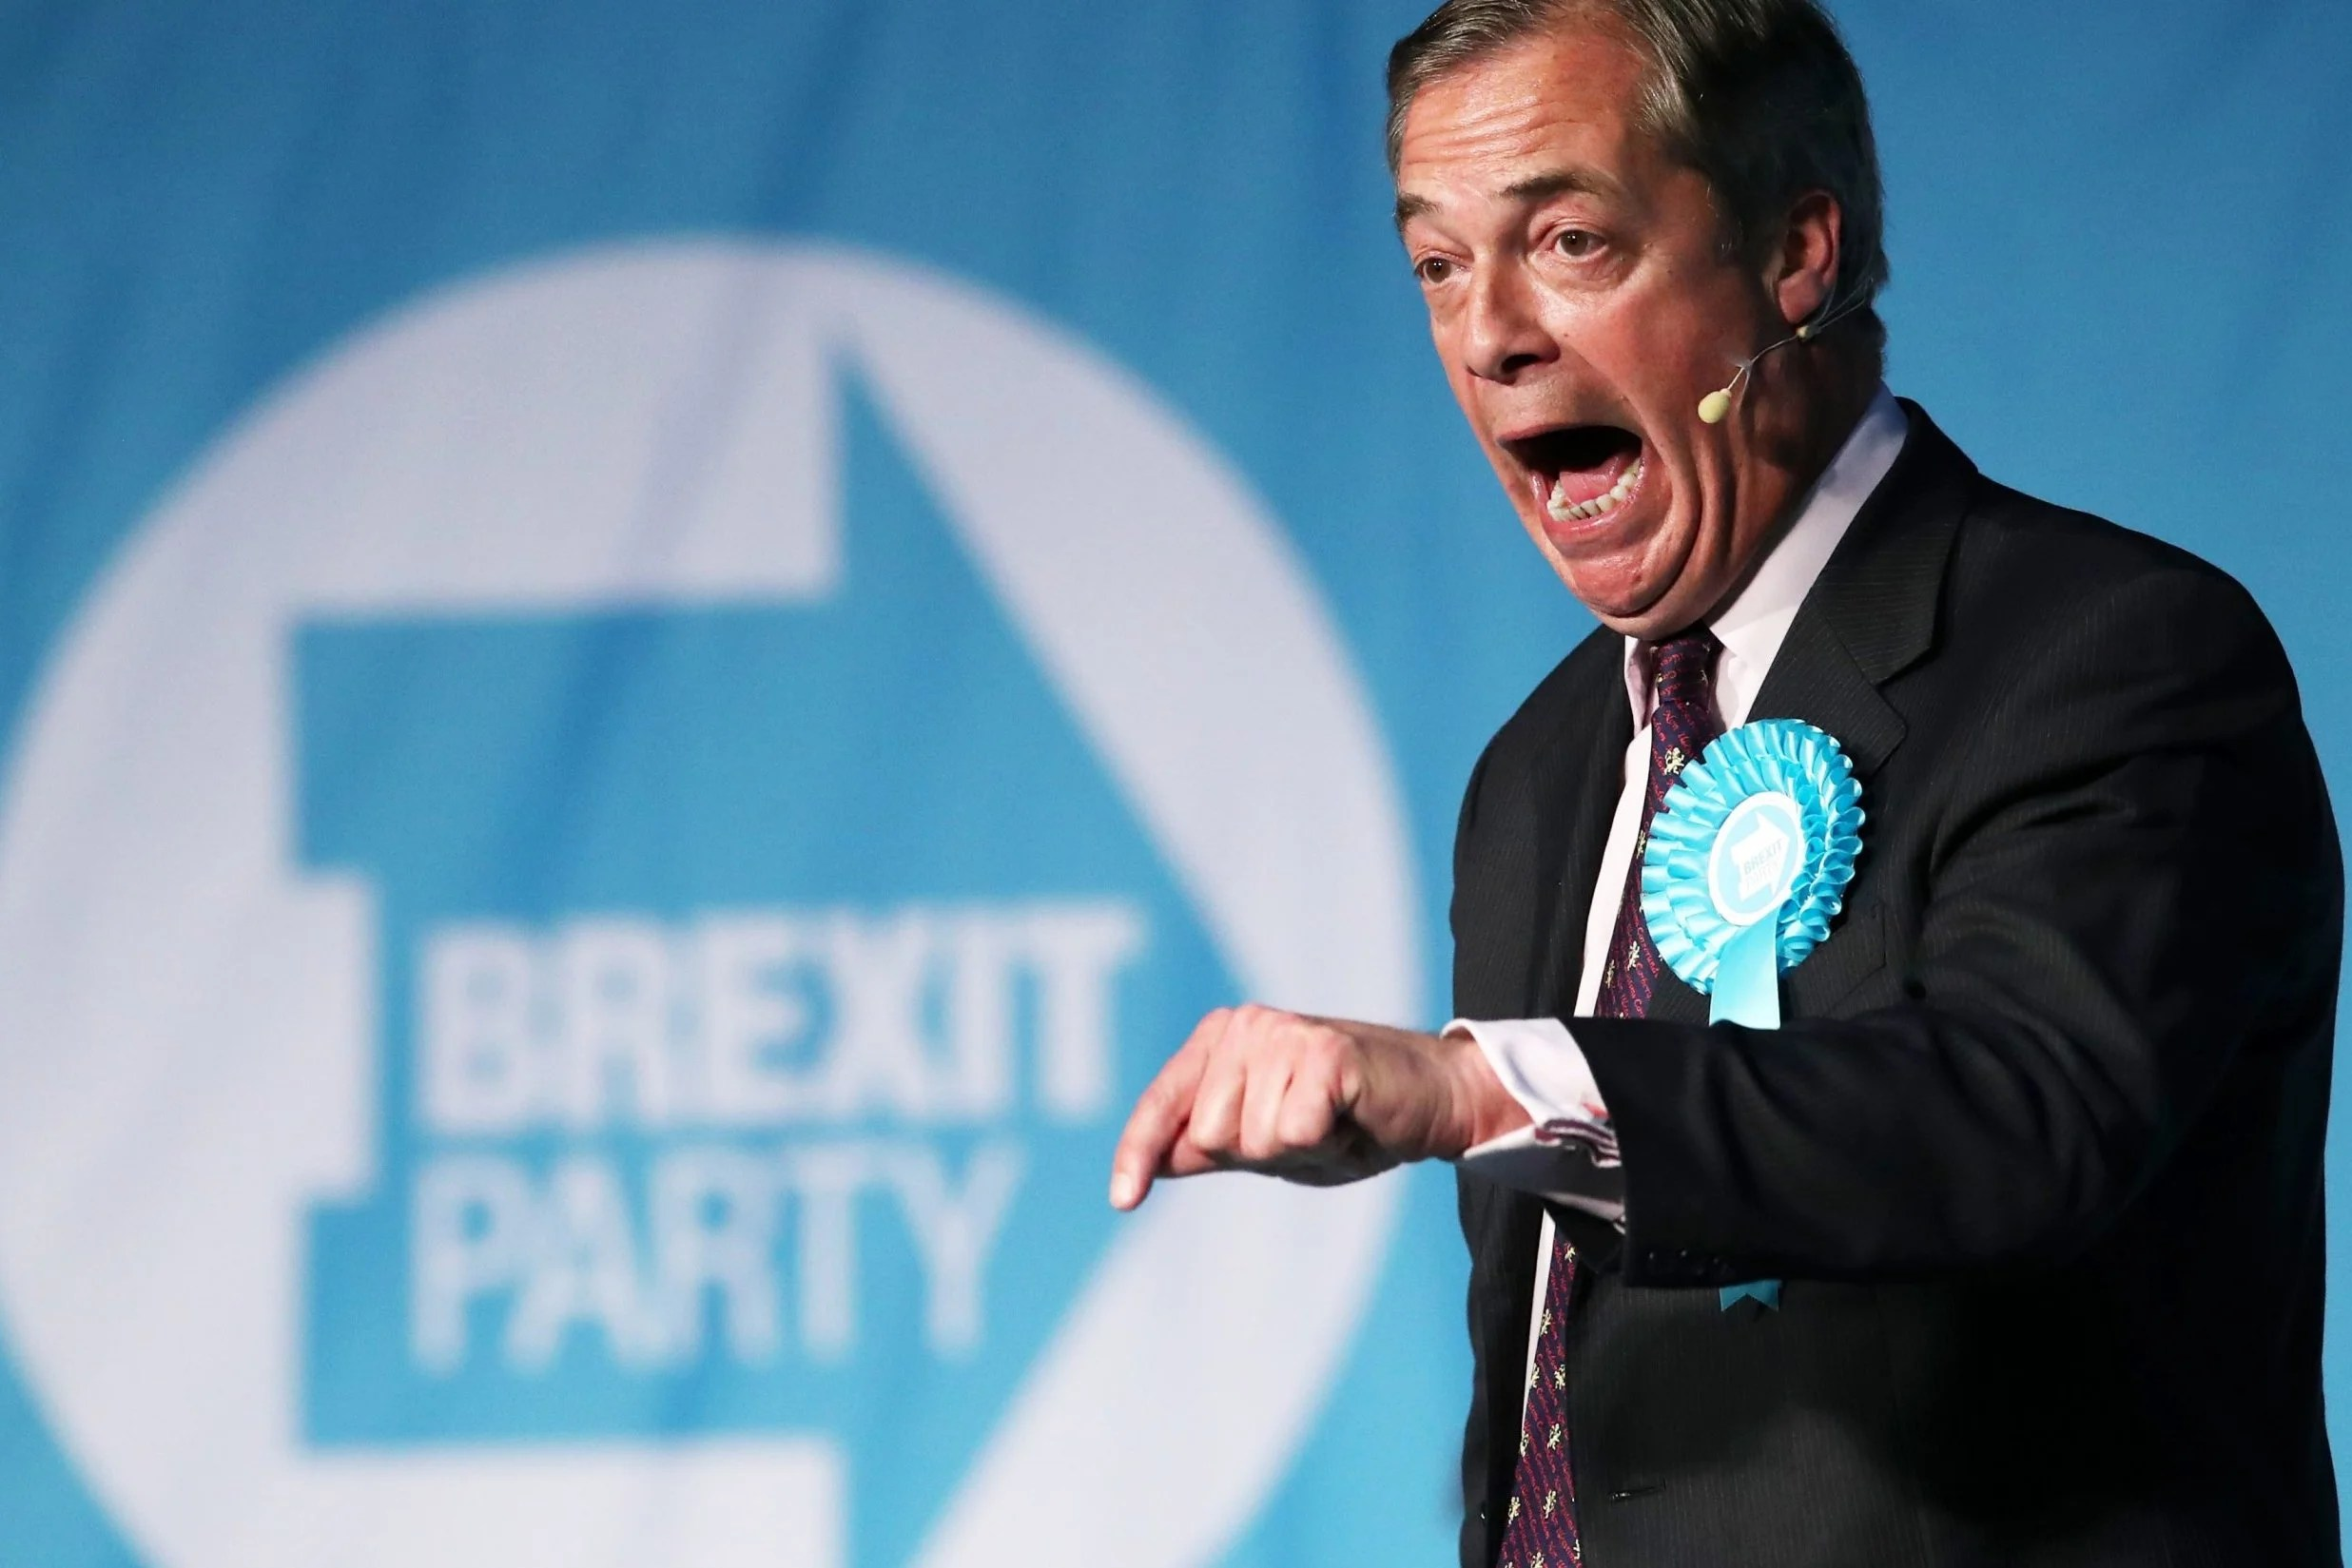 BrexitParty1605a Brexit Party logo 'cleverly designed to tell voters to back Farage'